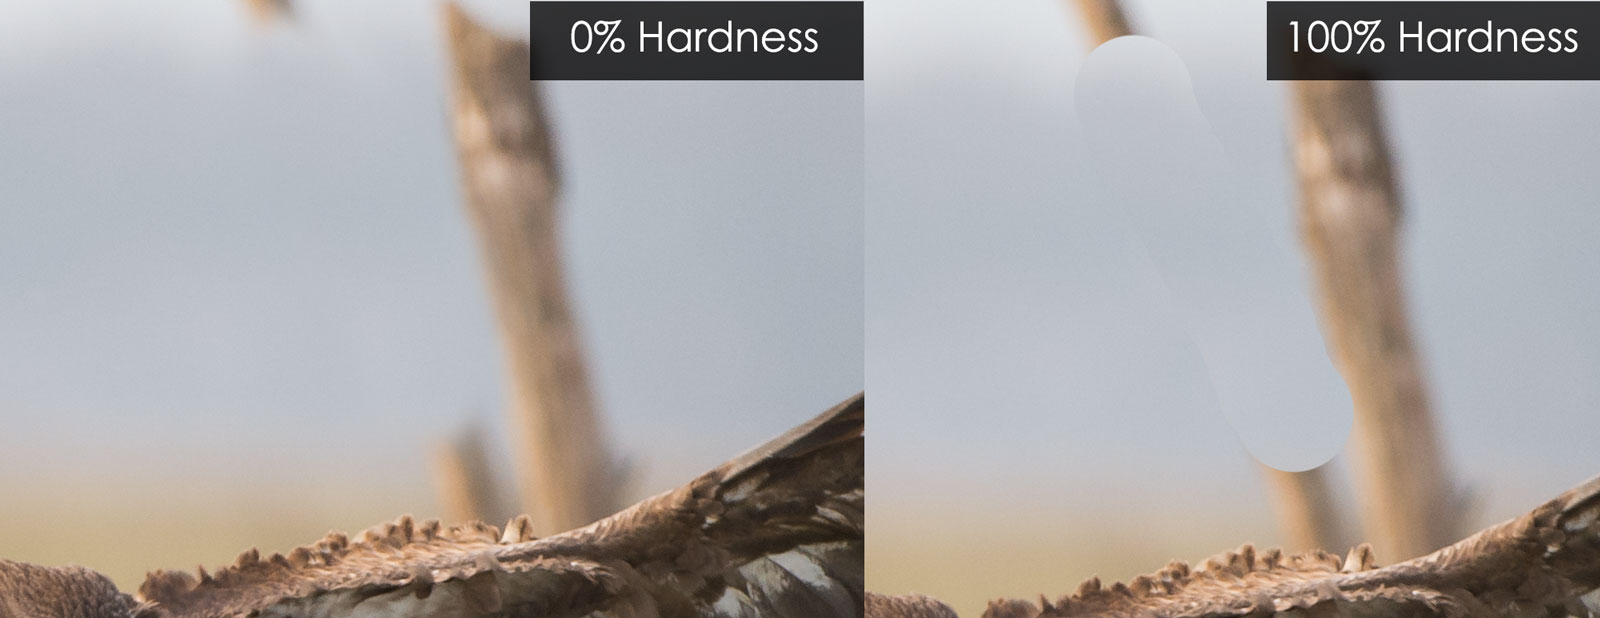 brush hardness comparison